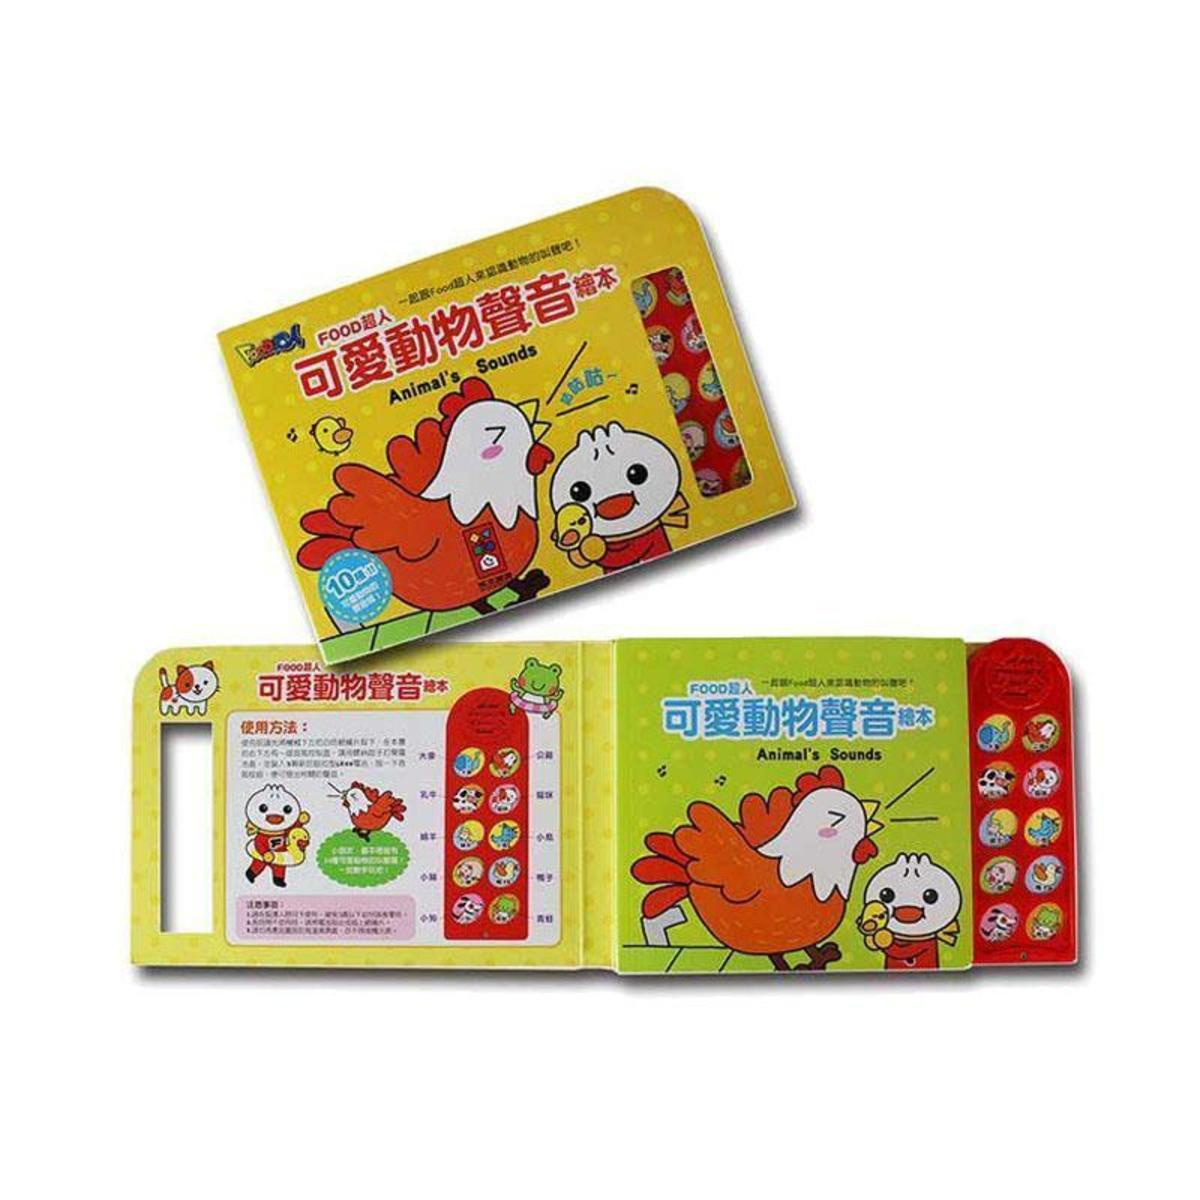 Publishing Cute Animal Sound Picture Book - FOOD Superman Taiwan Import